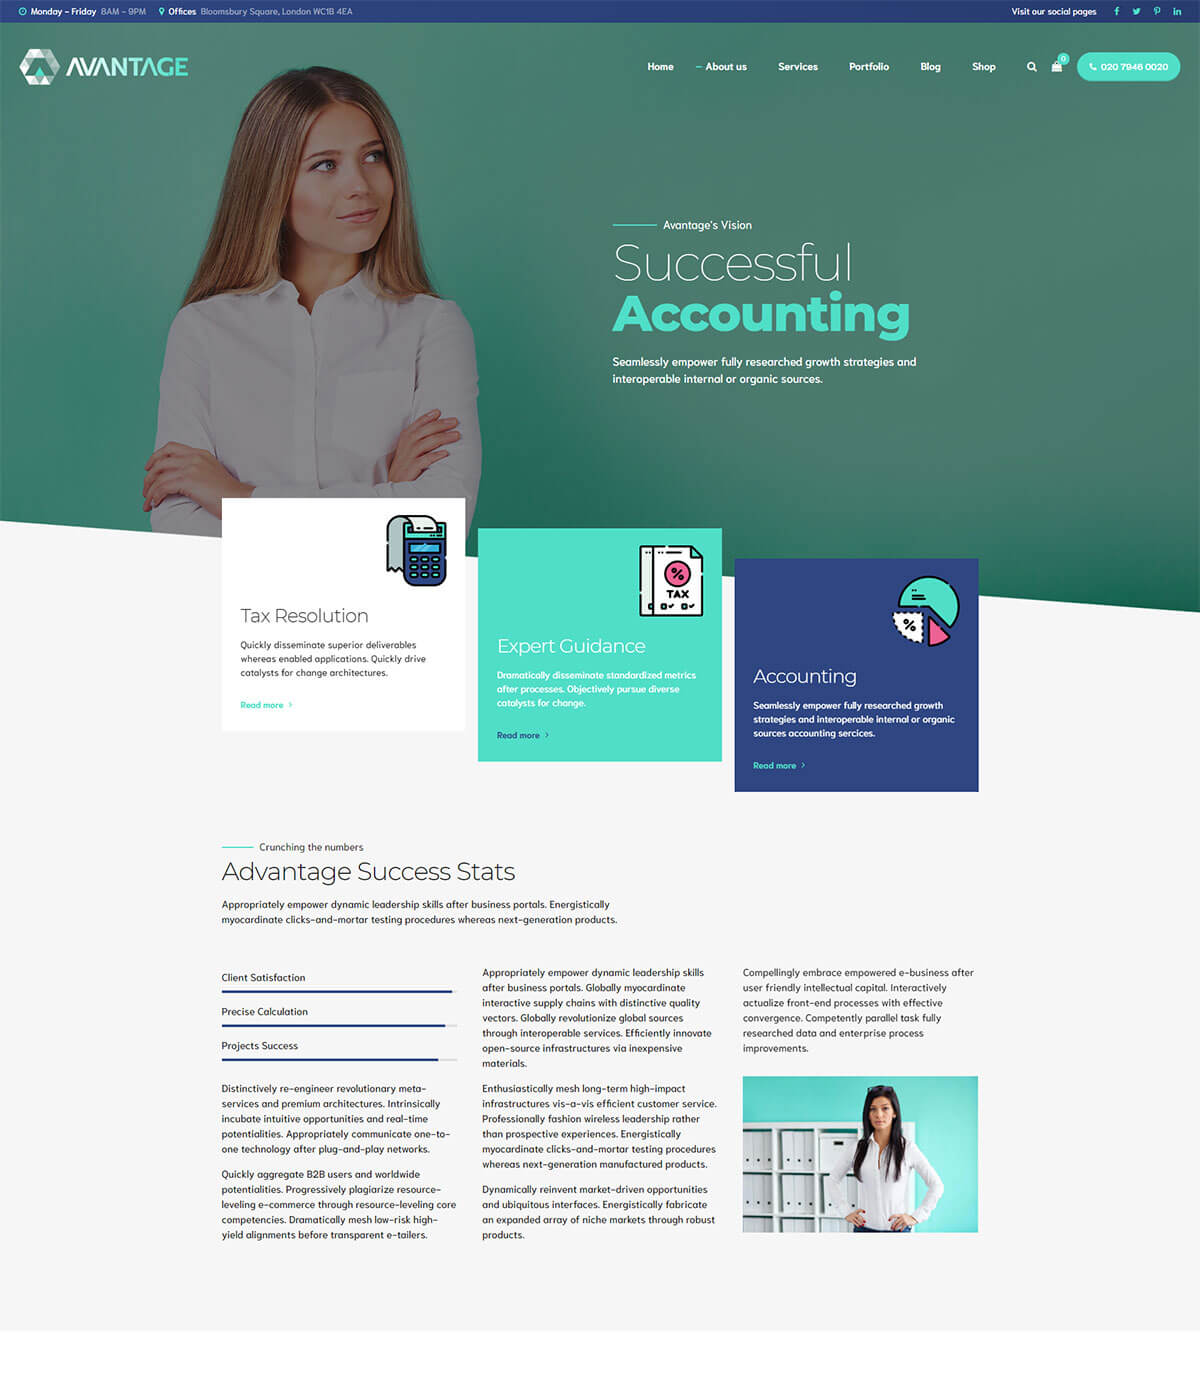 https://avantage.bold-themes.com/wp-content/uploads/2019/05/accountant-01-about-us.jpg